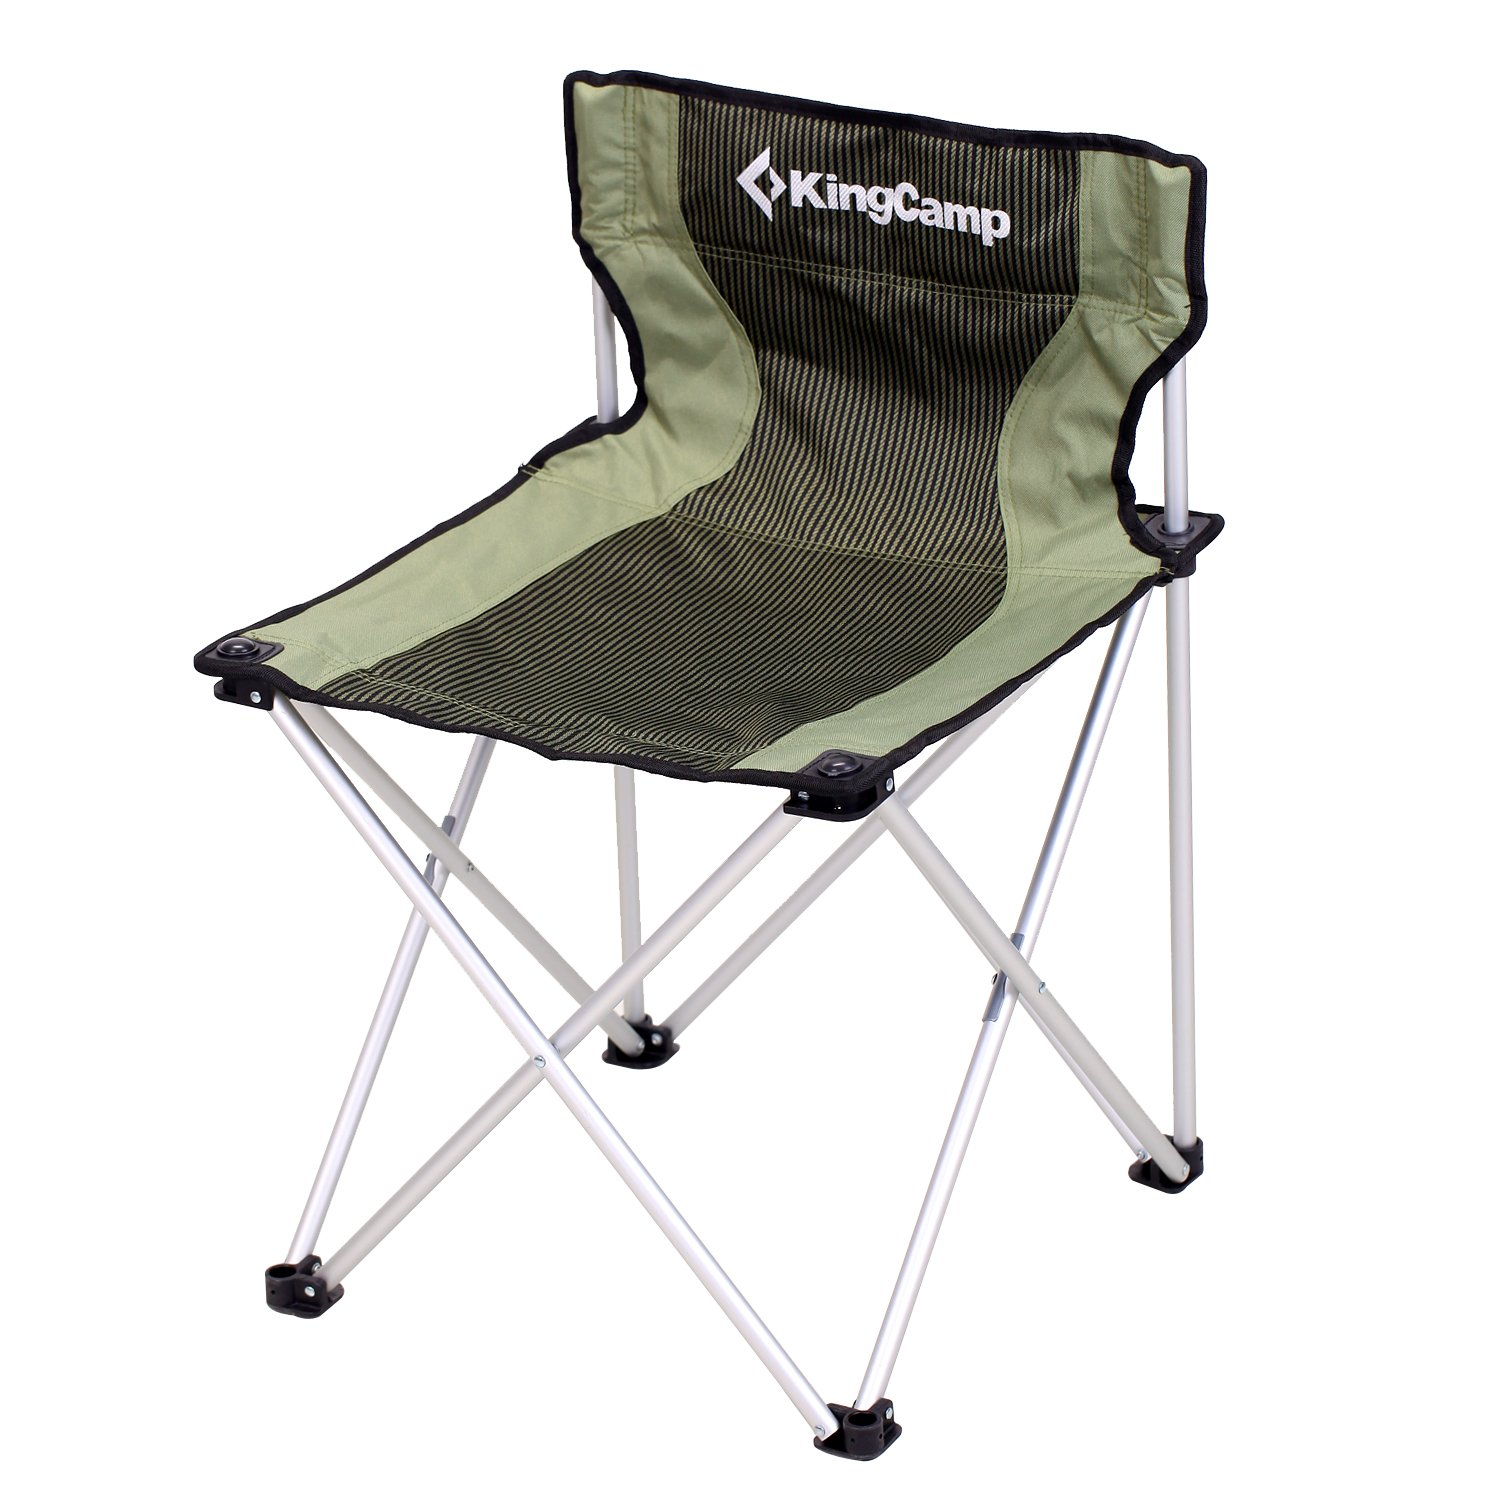 Amazon Kingcamp pact Size Chair 260LBS Light